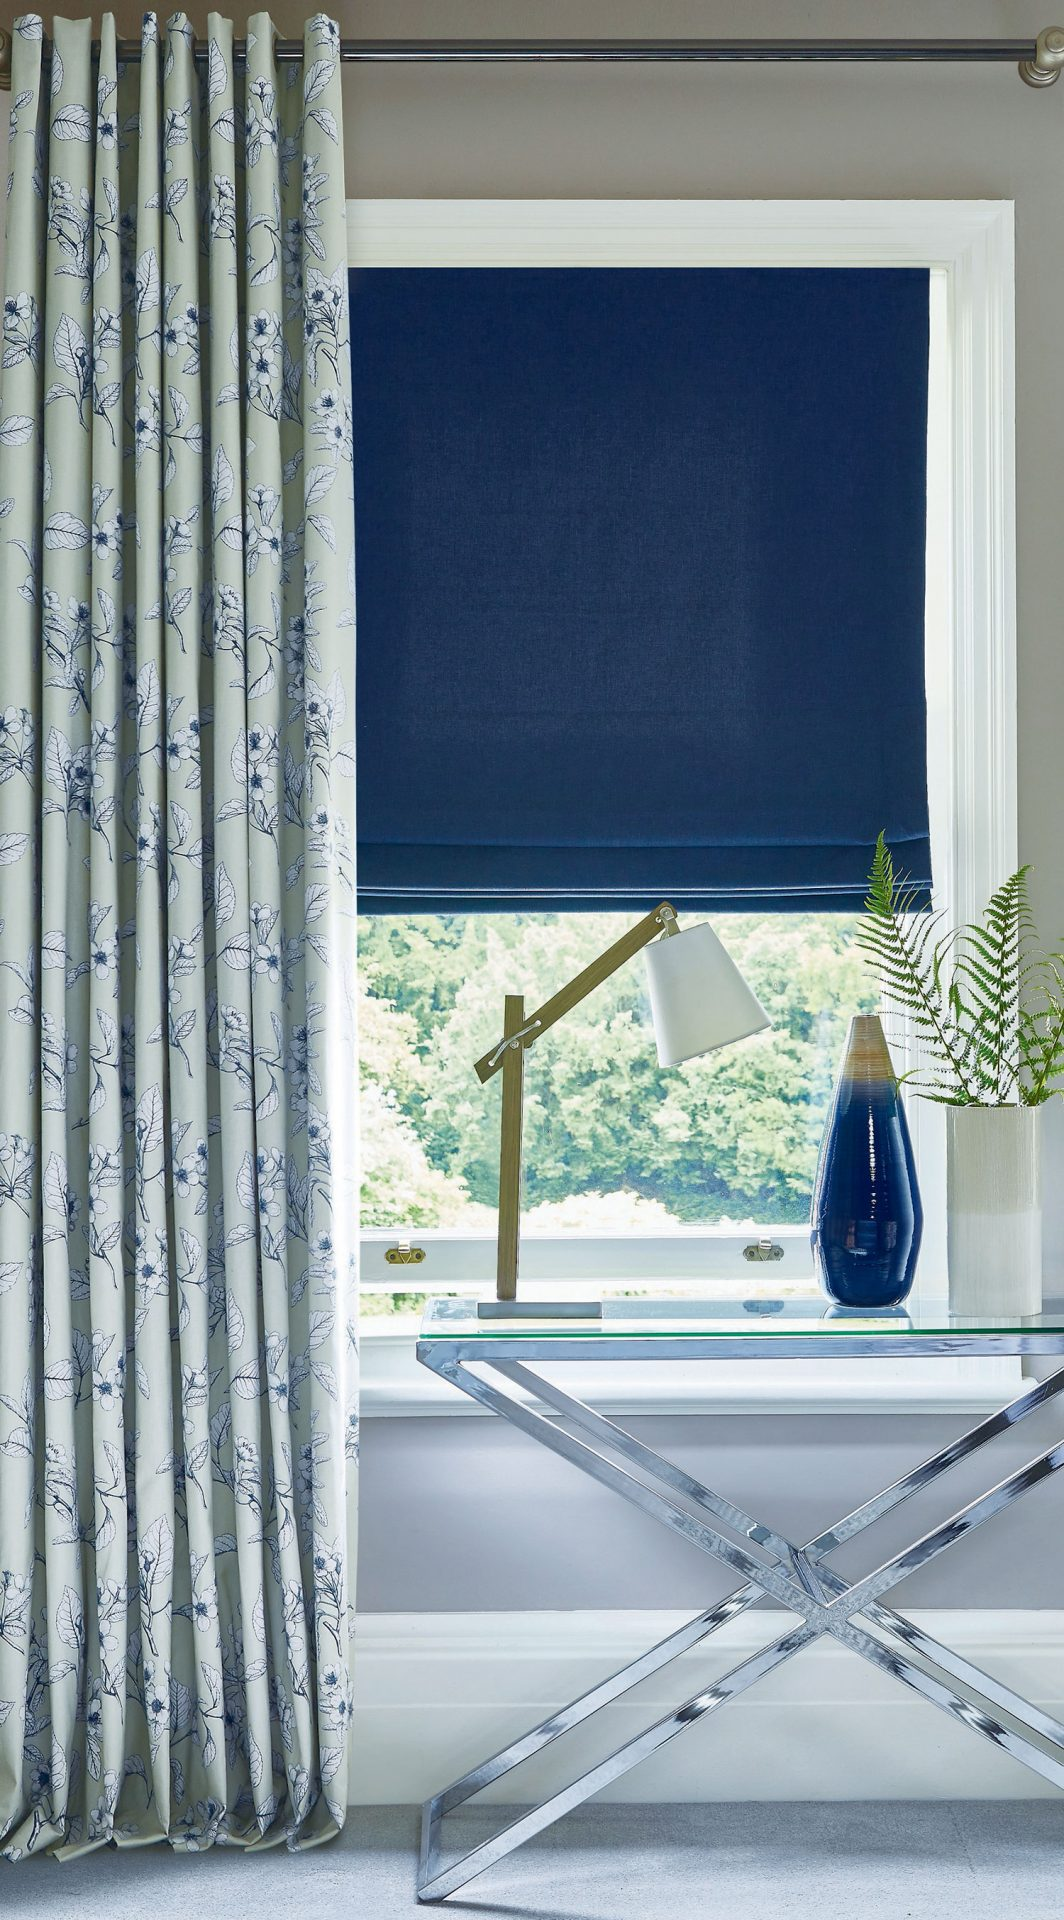 Oslo Oxford & Cherry Blossom Robins Egg | PT Roman Blind